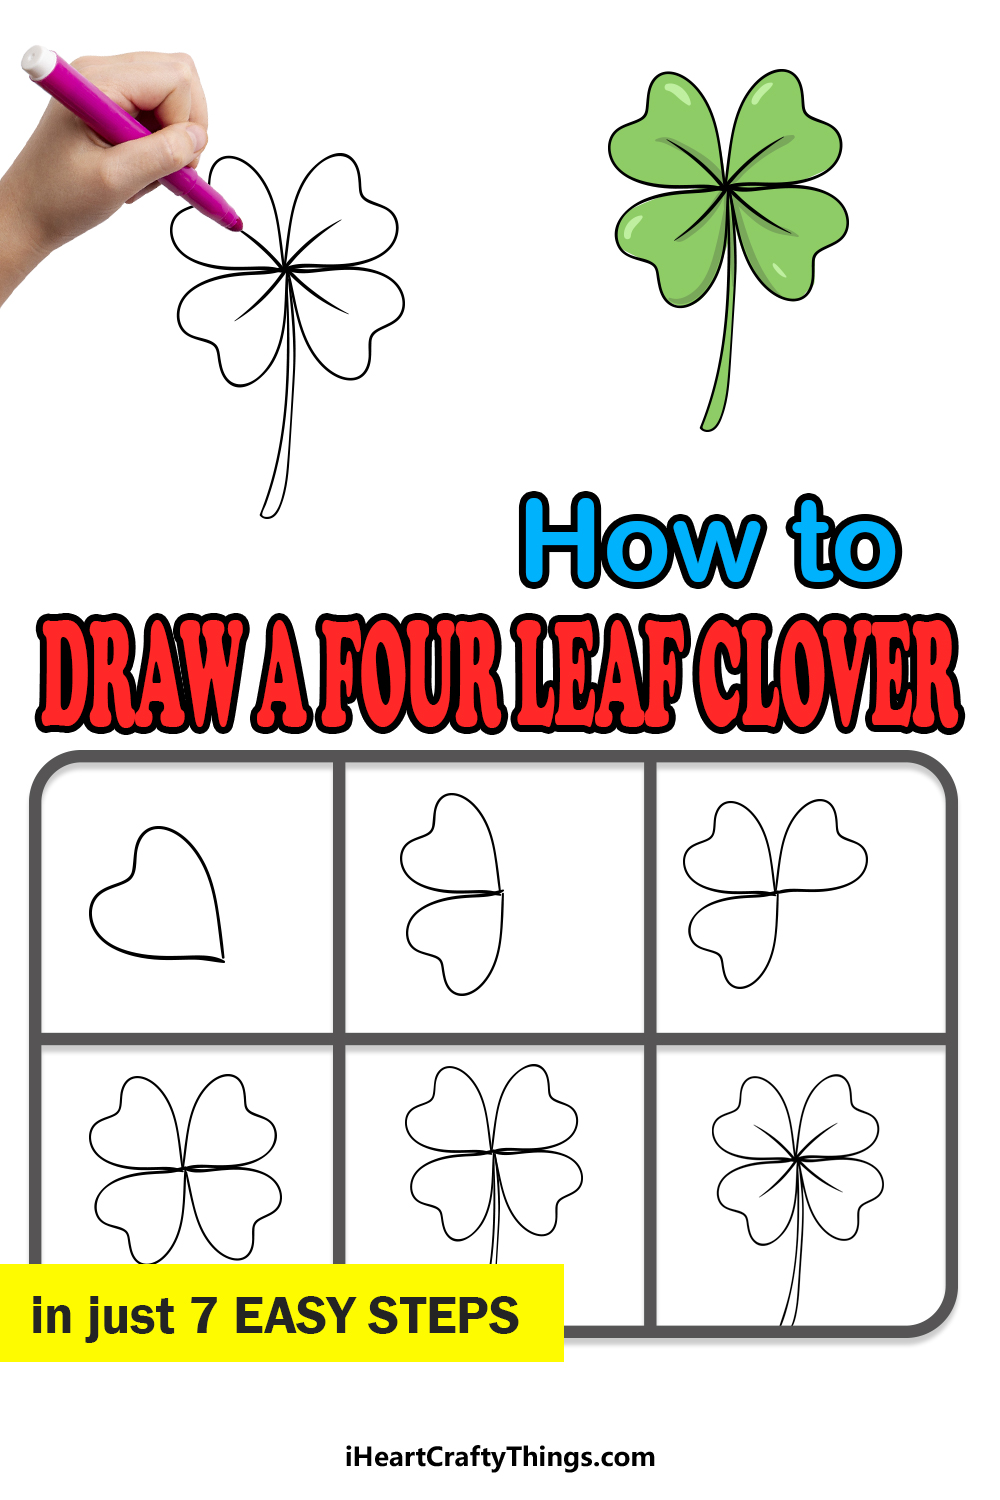 how to draw a four-leaf clover in 7 easy steps